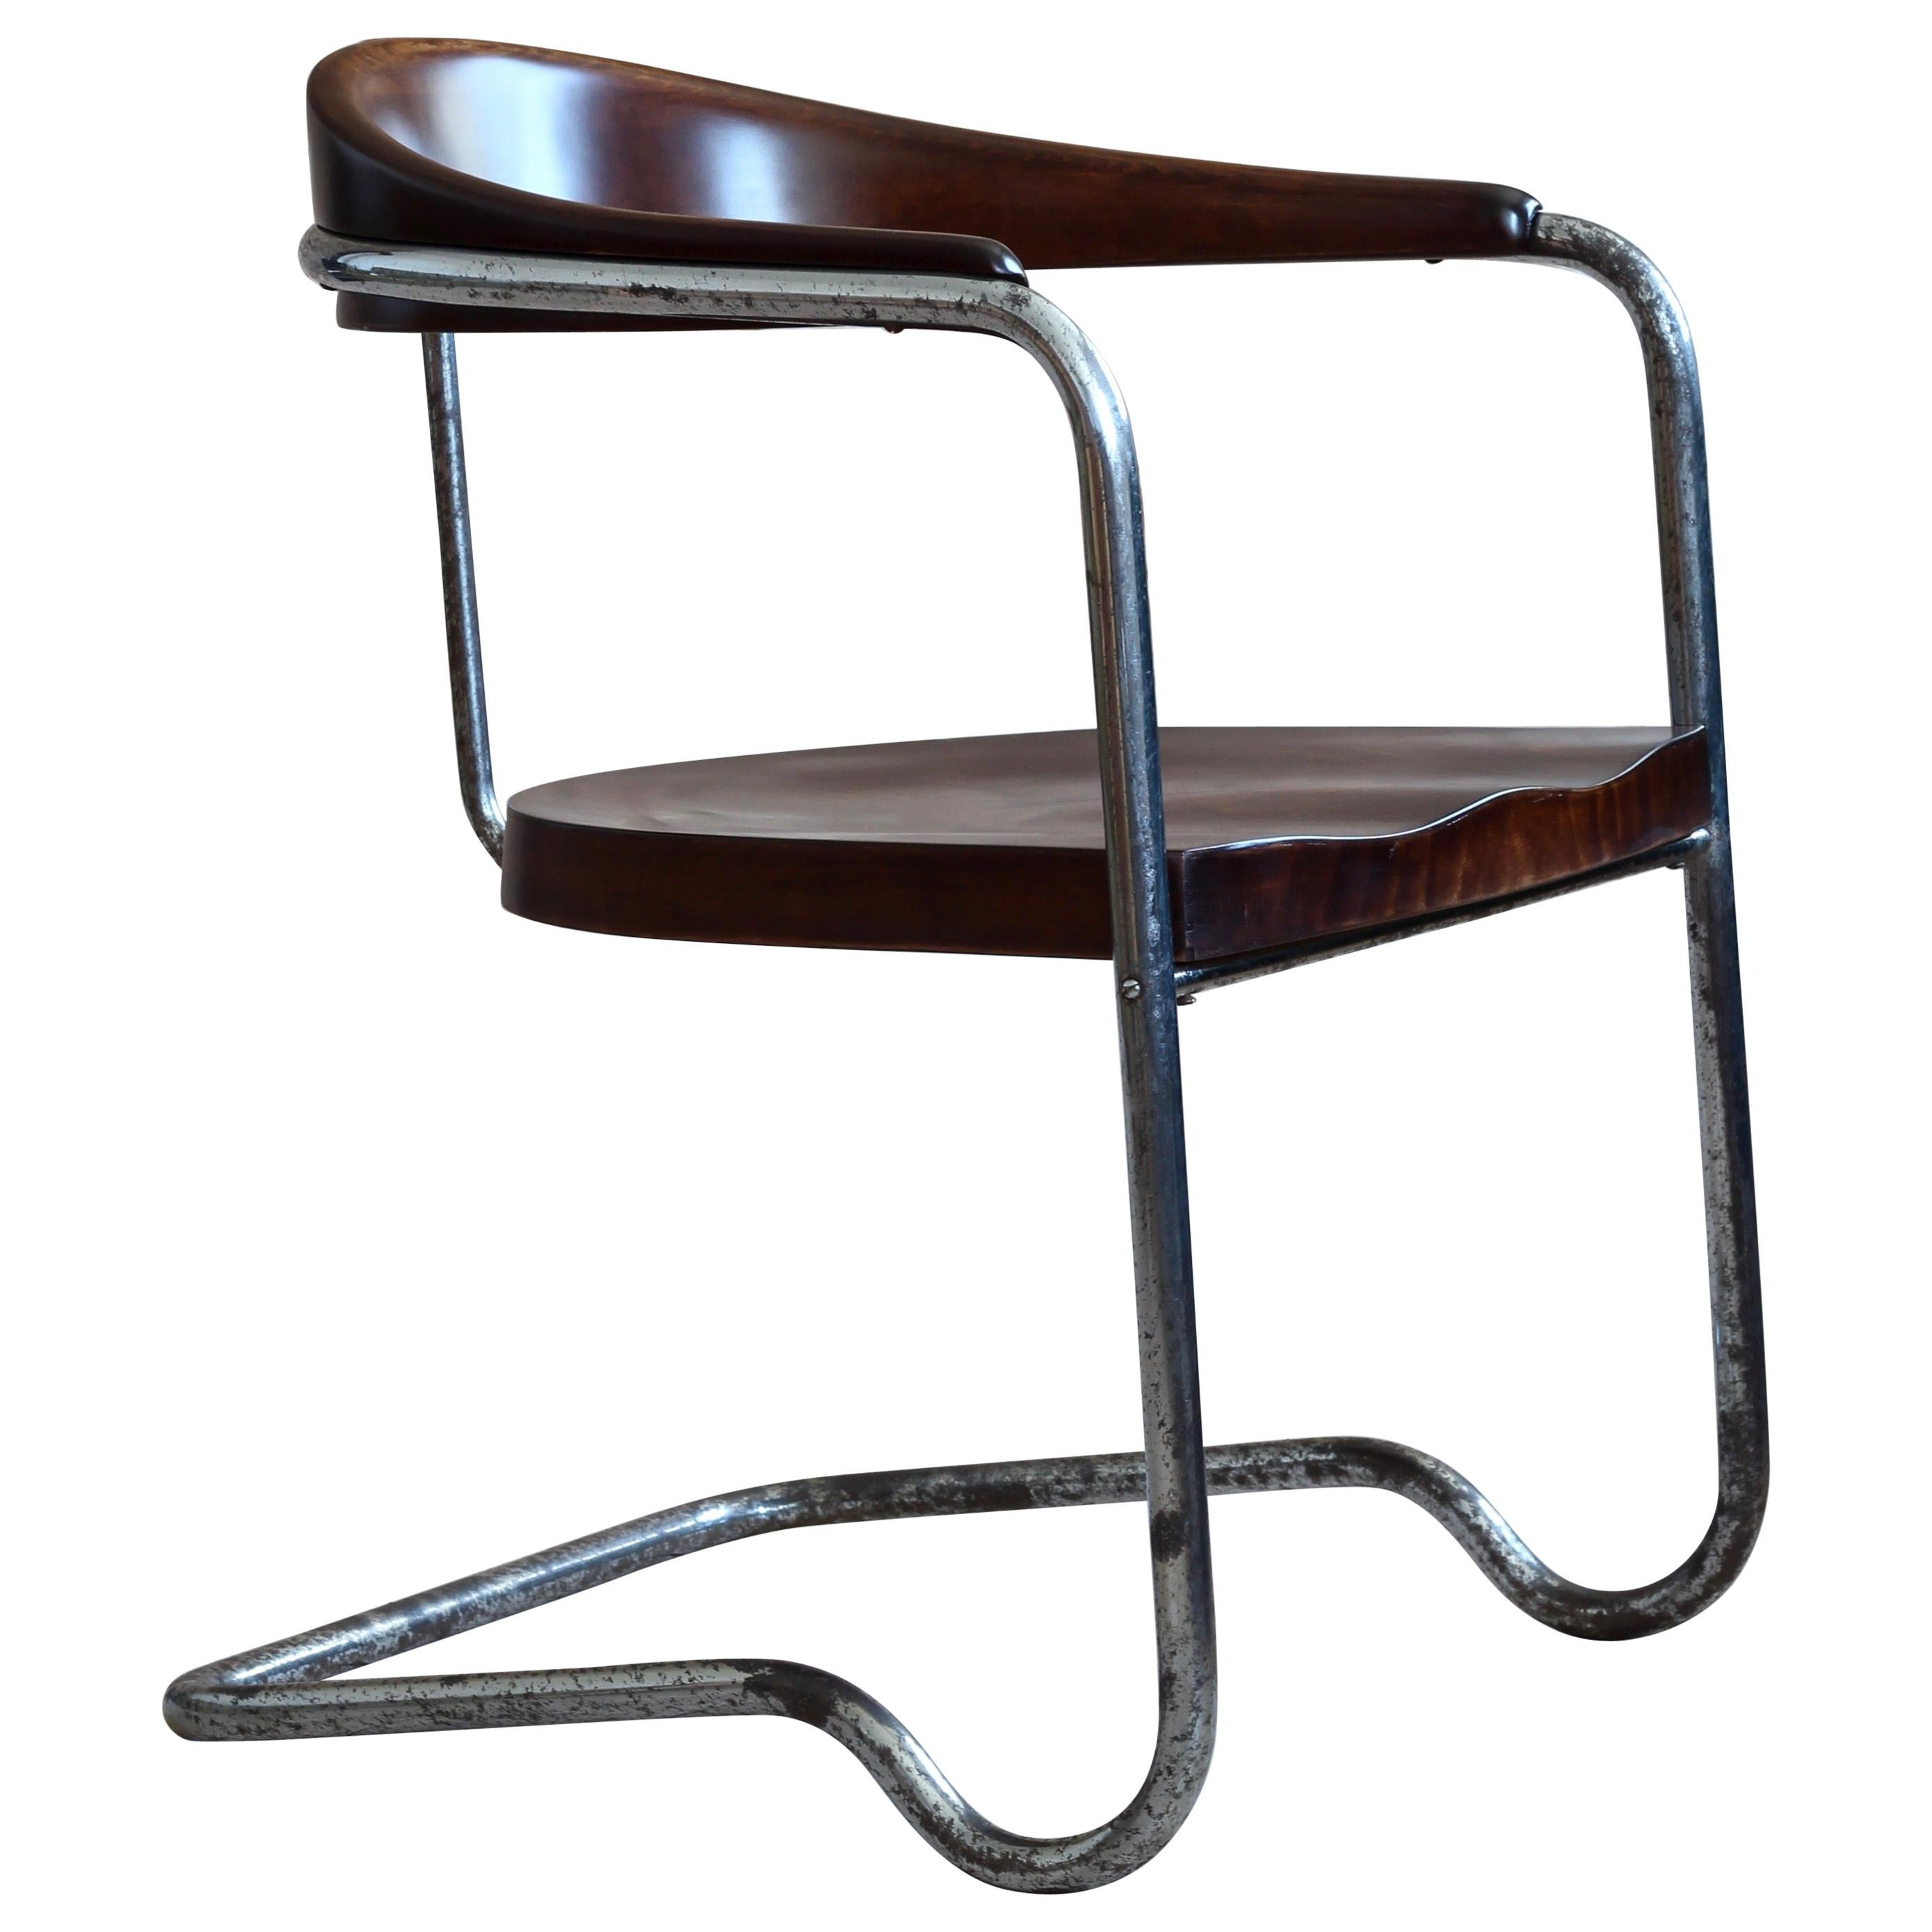 Cantilever Chair B 263 By Thonet In The 1930s Bauhaus At 1stdibs